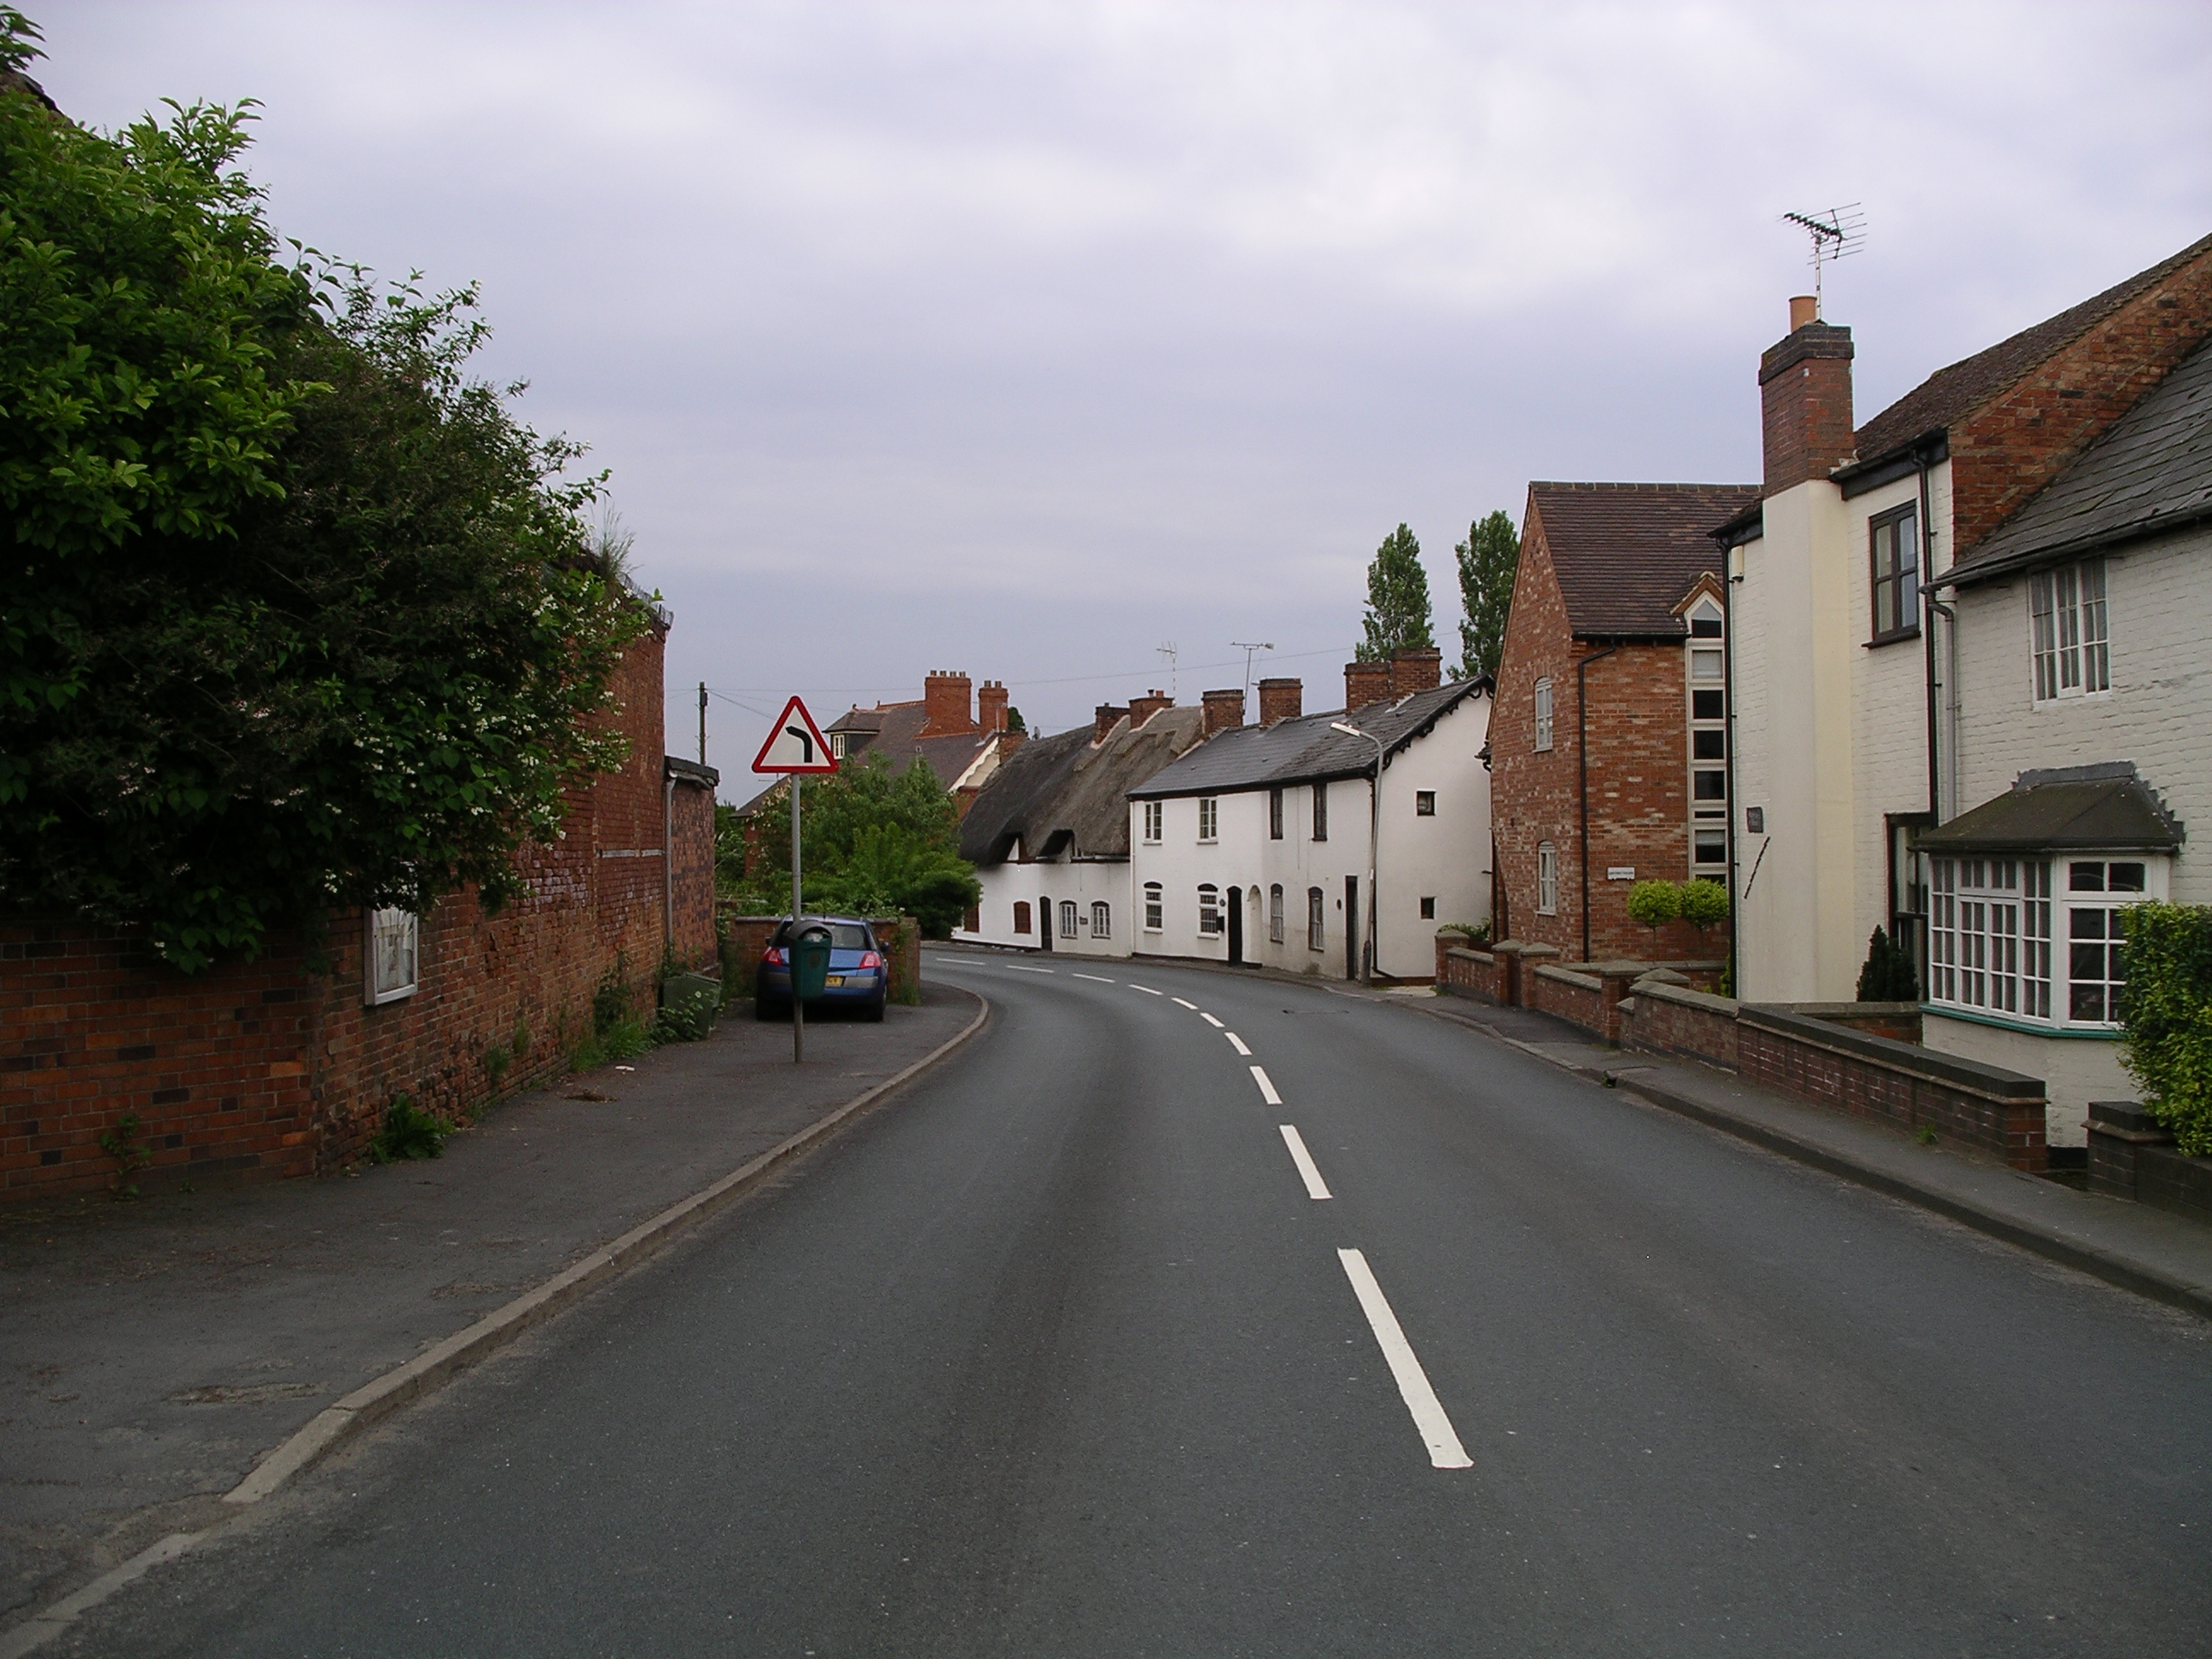 File:Ansty -Warwickshire -main road -6j08.jpg - Wikimedia Commons